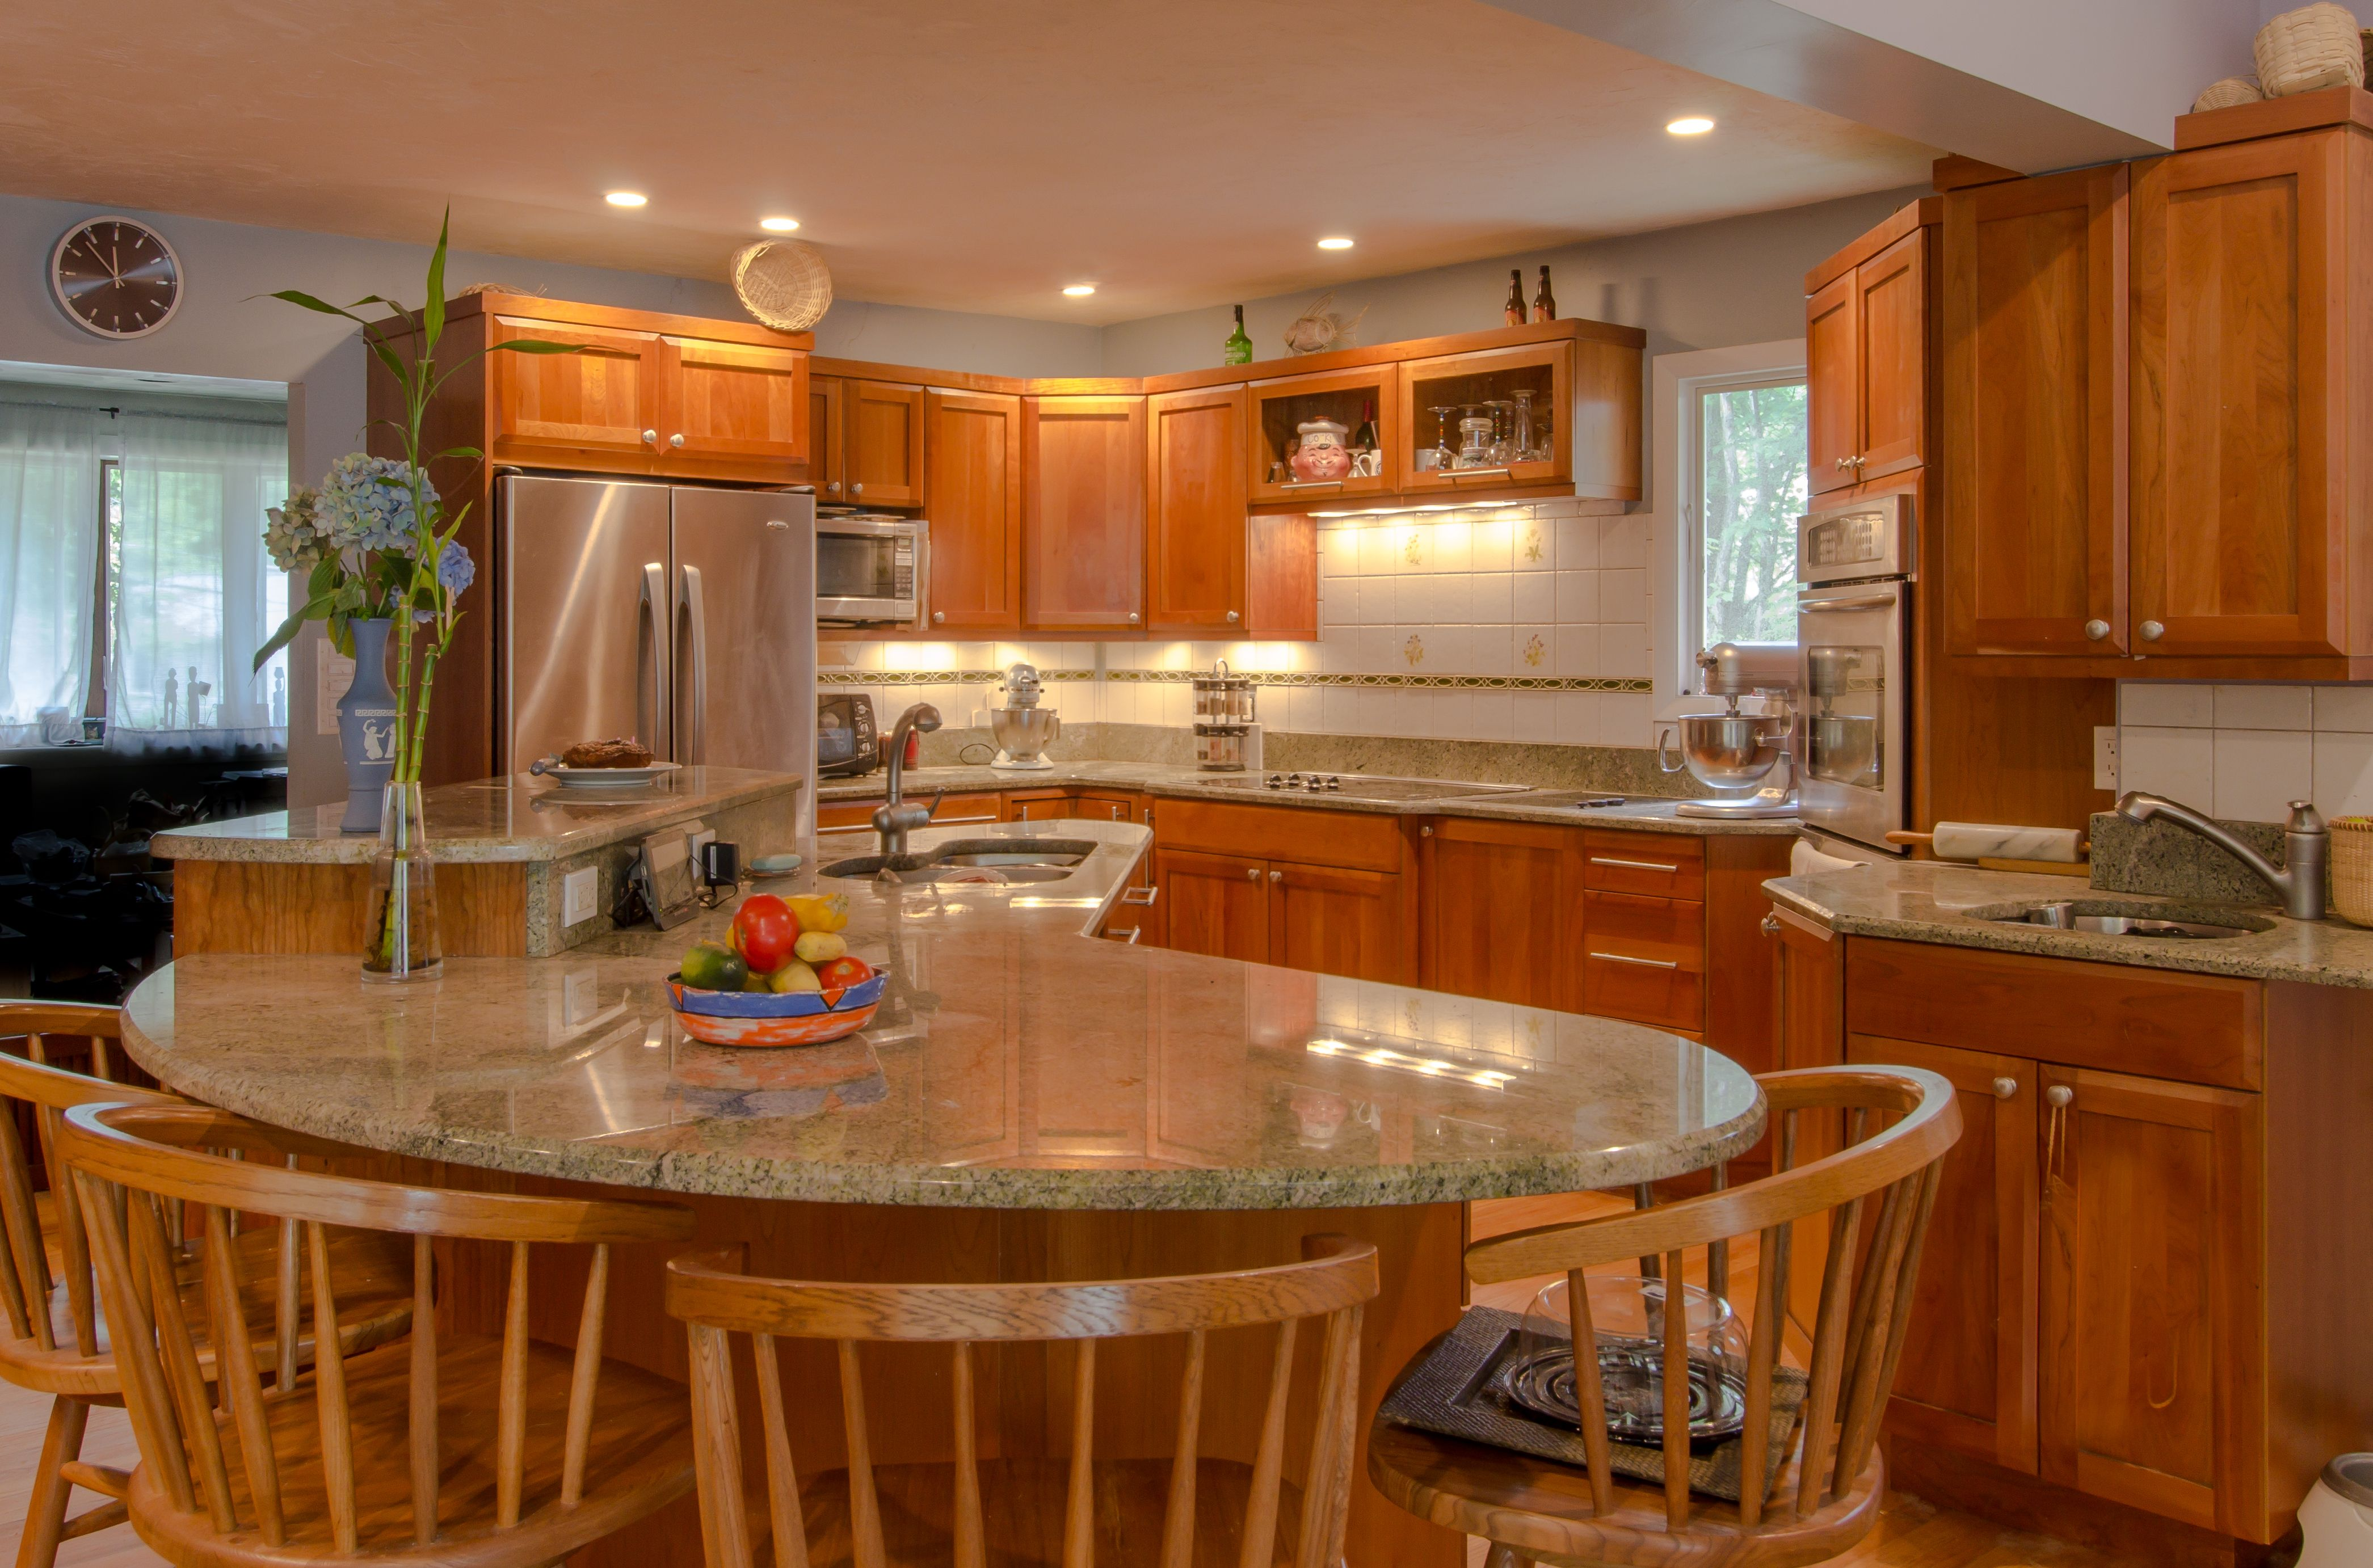 Cherry Wood Kitchens Cherry Wood Cabinetry Granite Countertops Glass Cabinets Large Island With Seating For Cherry Wood Kitchens Kitchen Redo Wood Kitchen